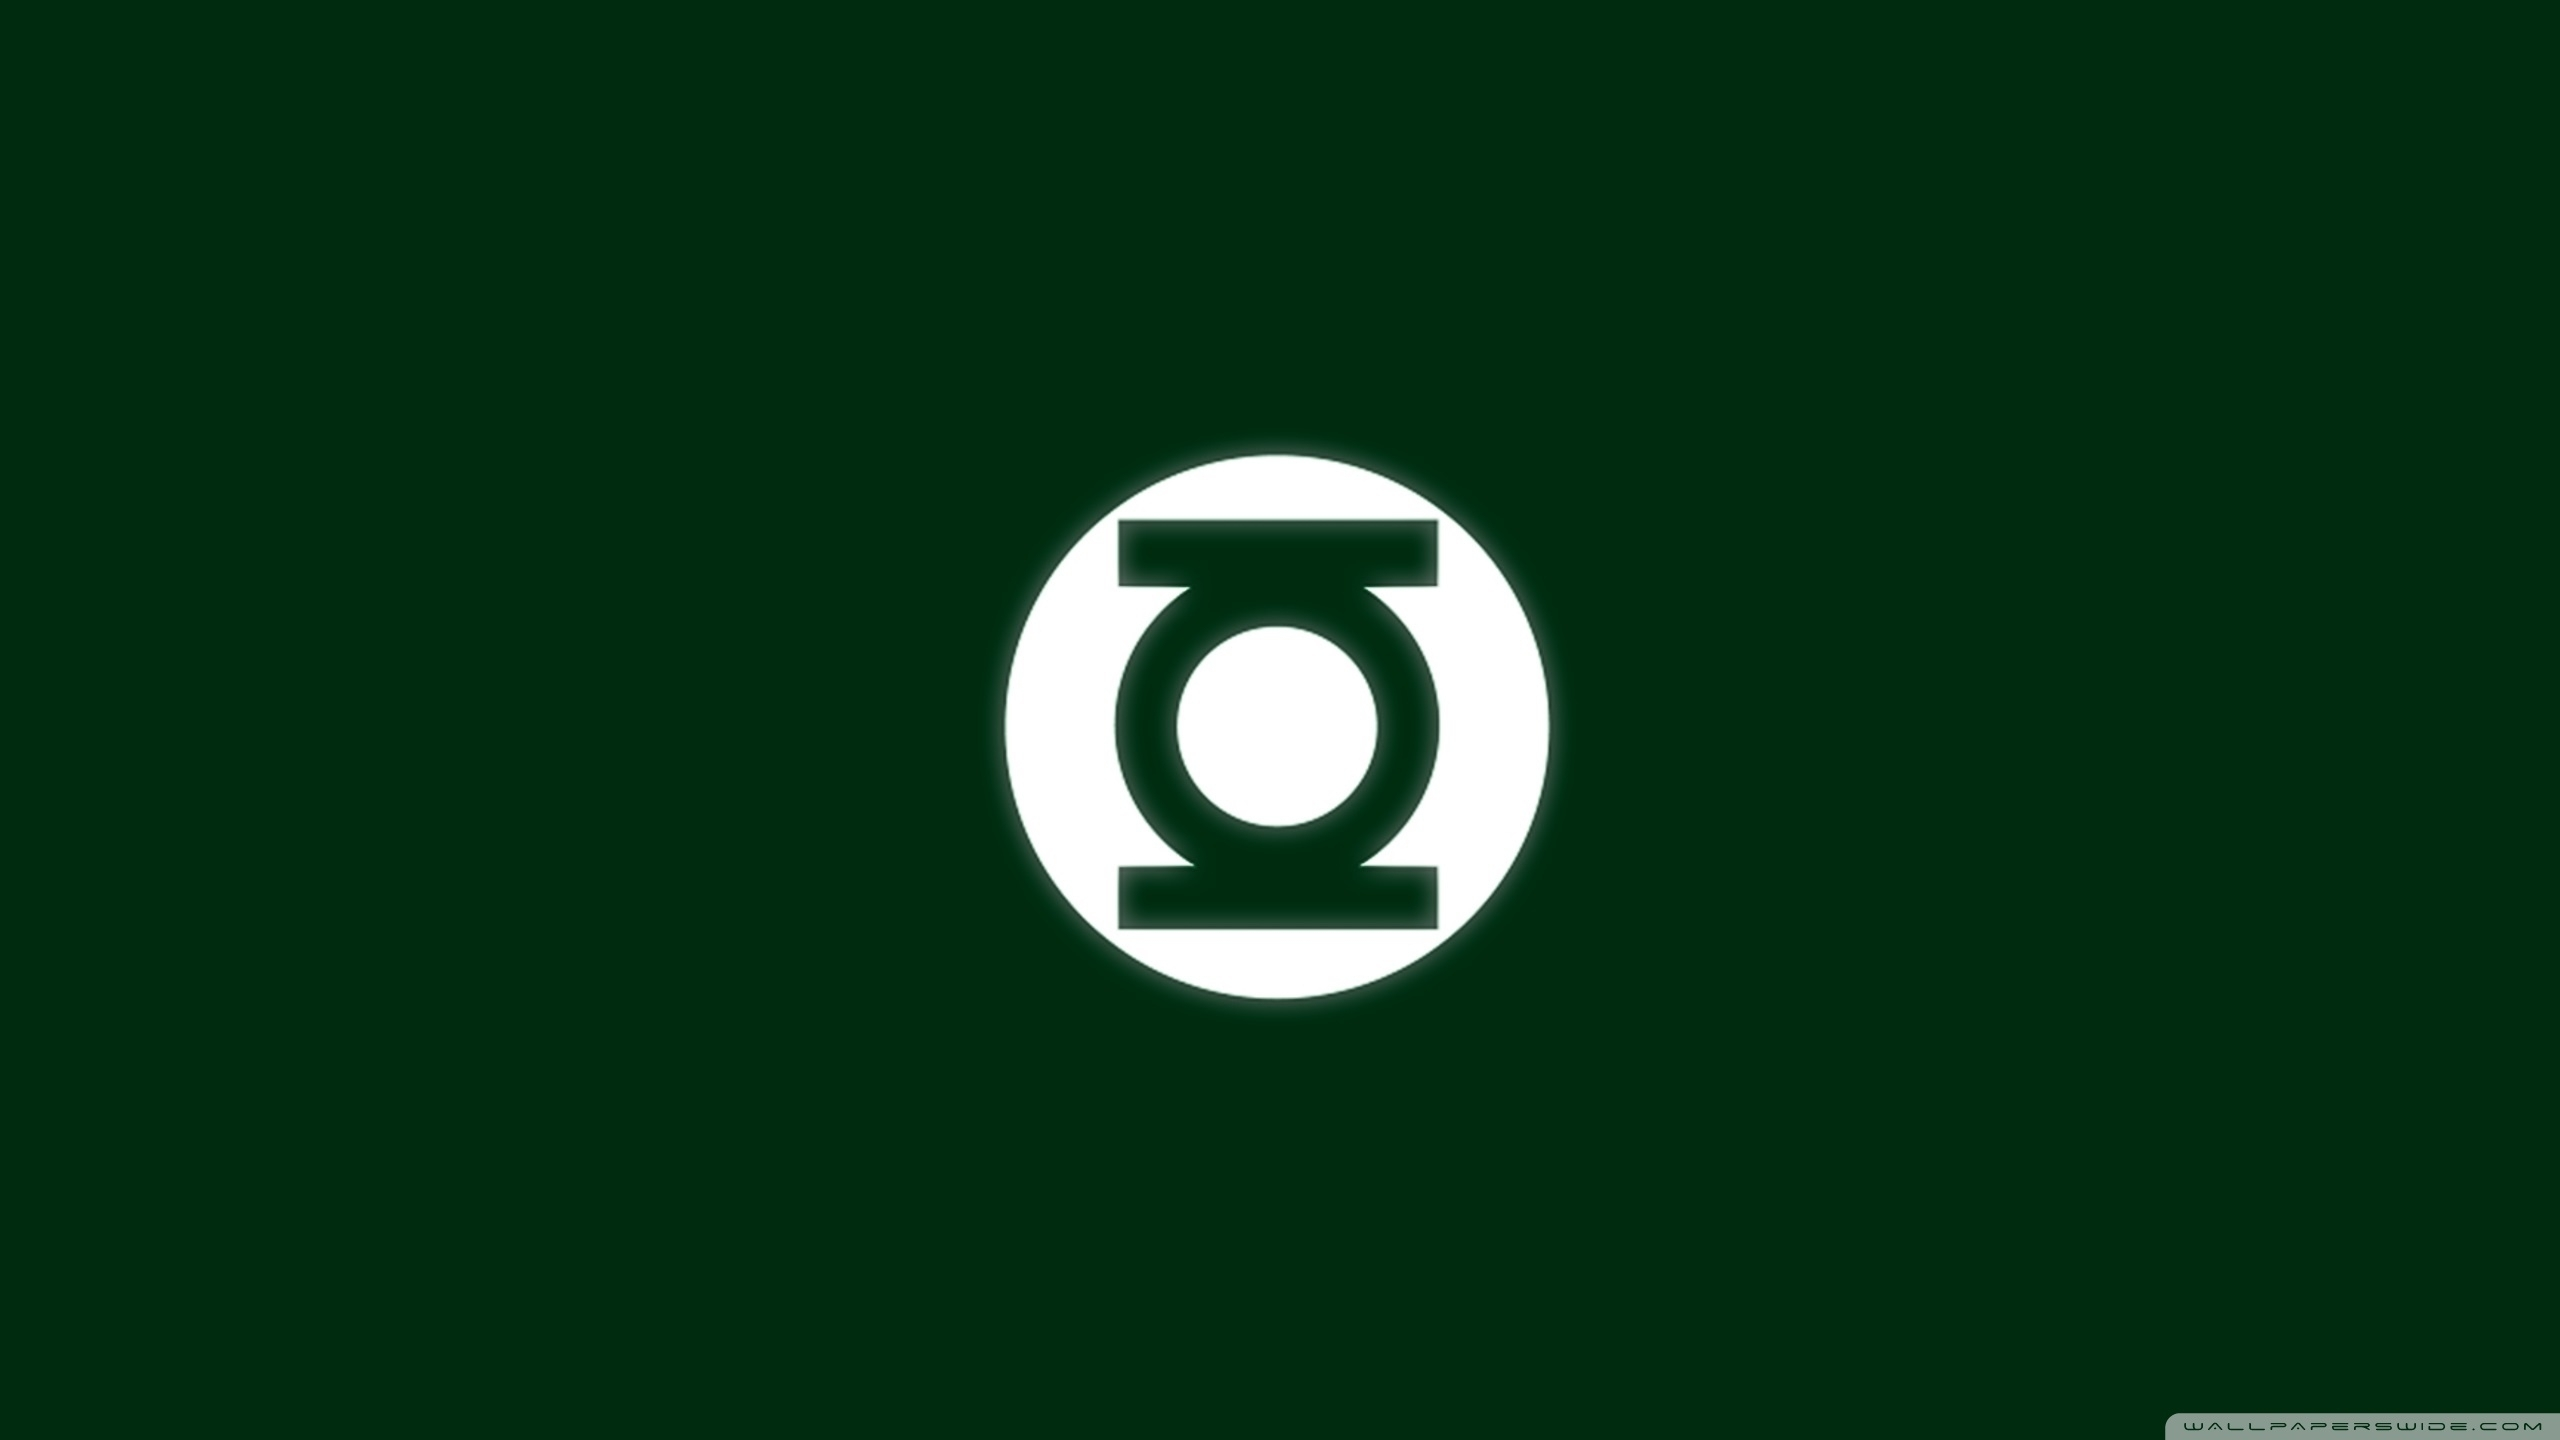 green lantern logo ❤ 4k hd desktop wallpaper for 4k ultra hd tv